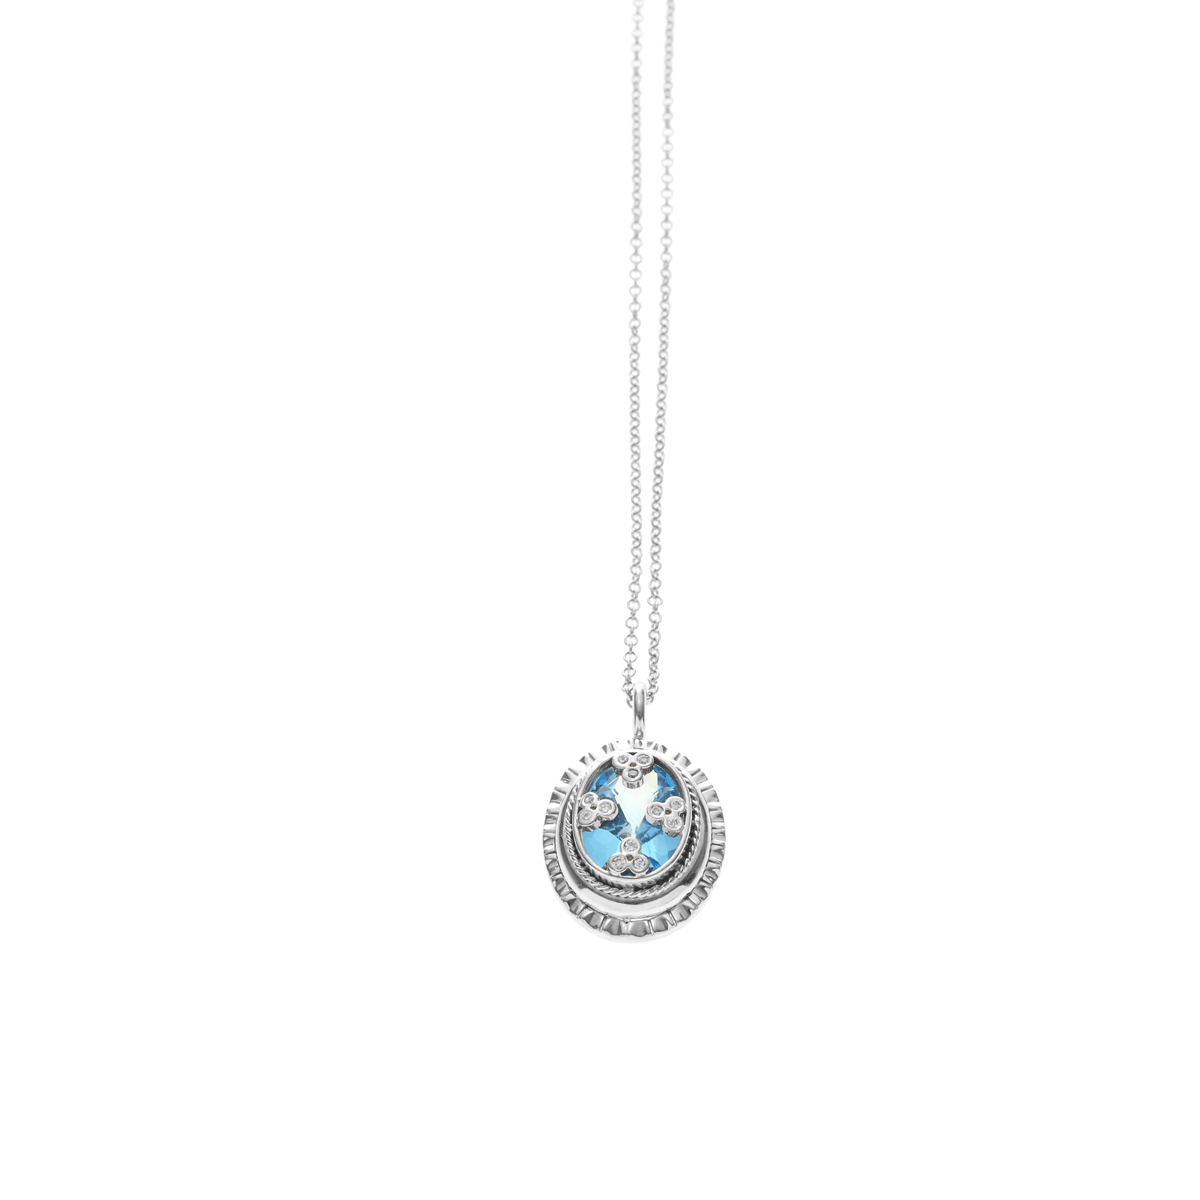 BLUE TOPAZ PENDANT - QUEEN OF HEARTS - Chris Aire Fine Jewelry & Timepieces